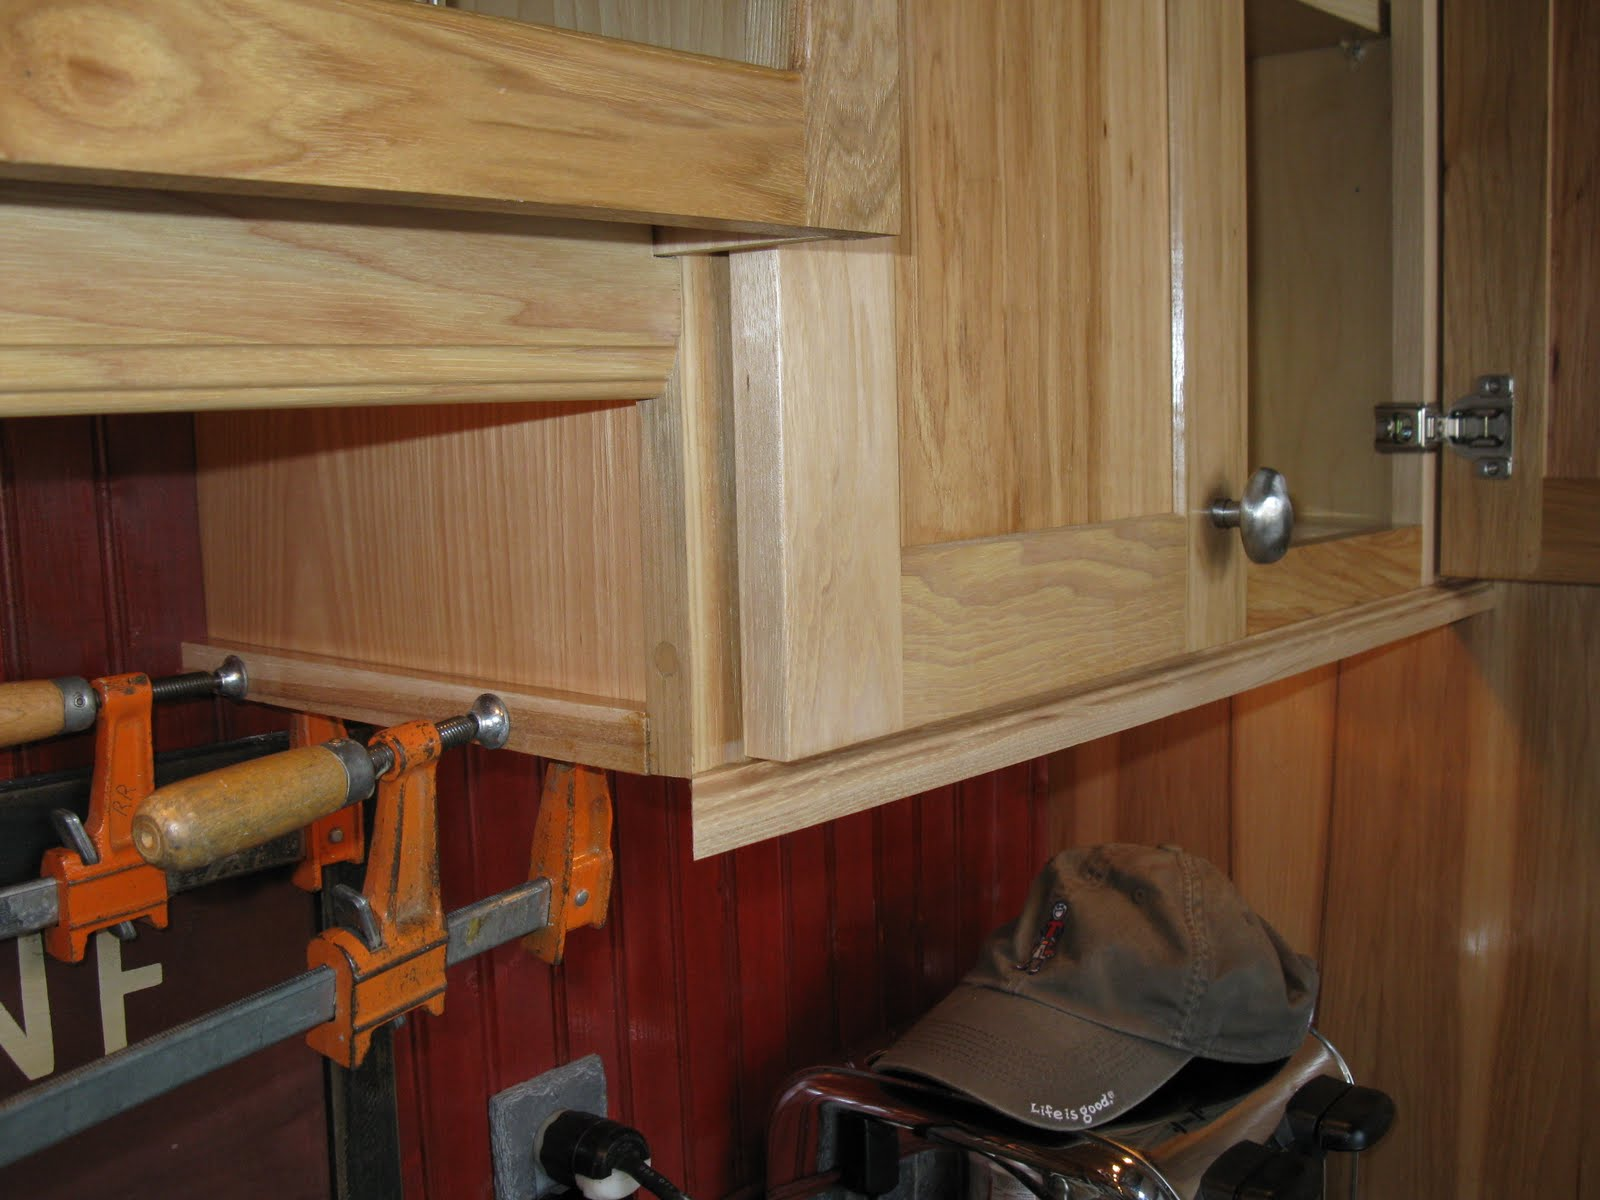 Installing molding for under cabinet lighting a concord carpenter aloadofball Gallery